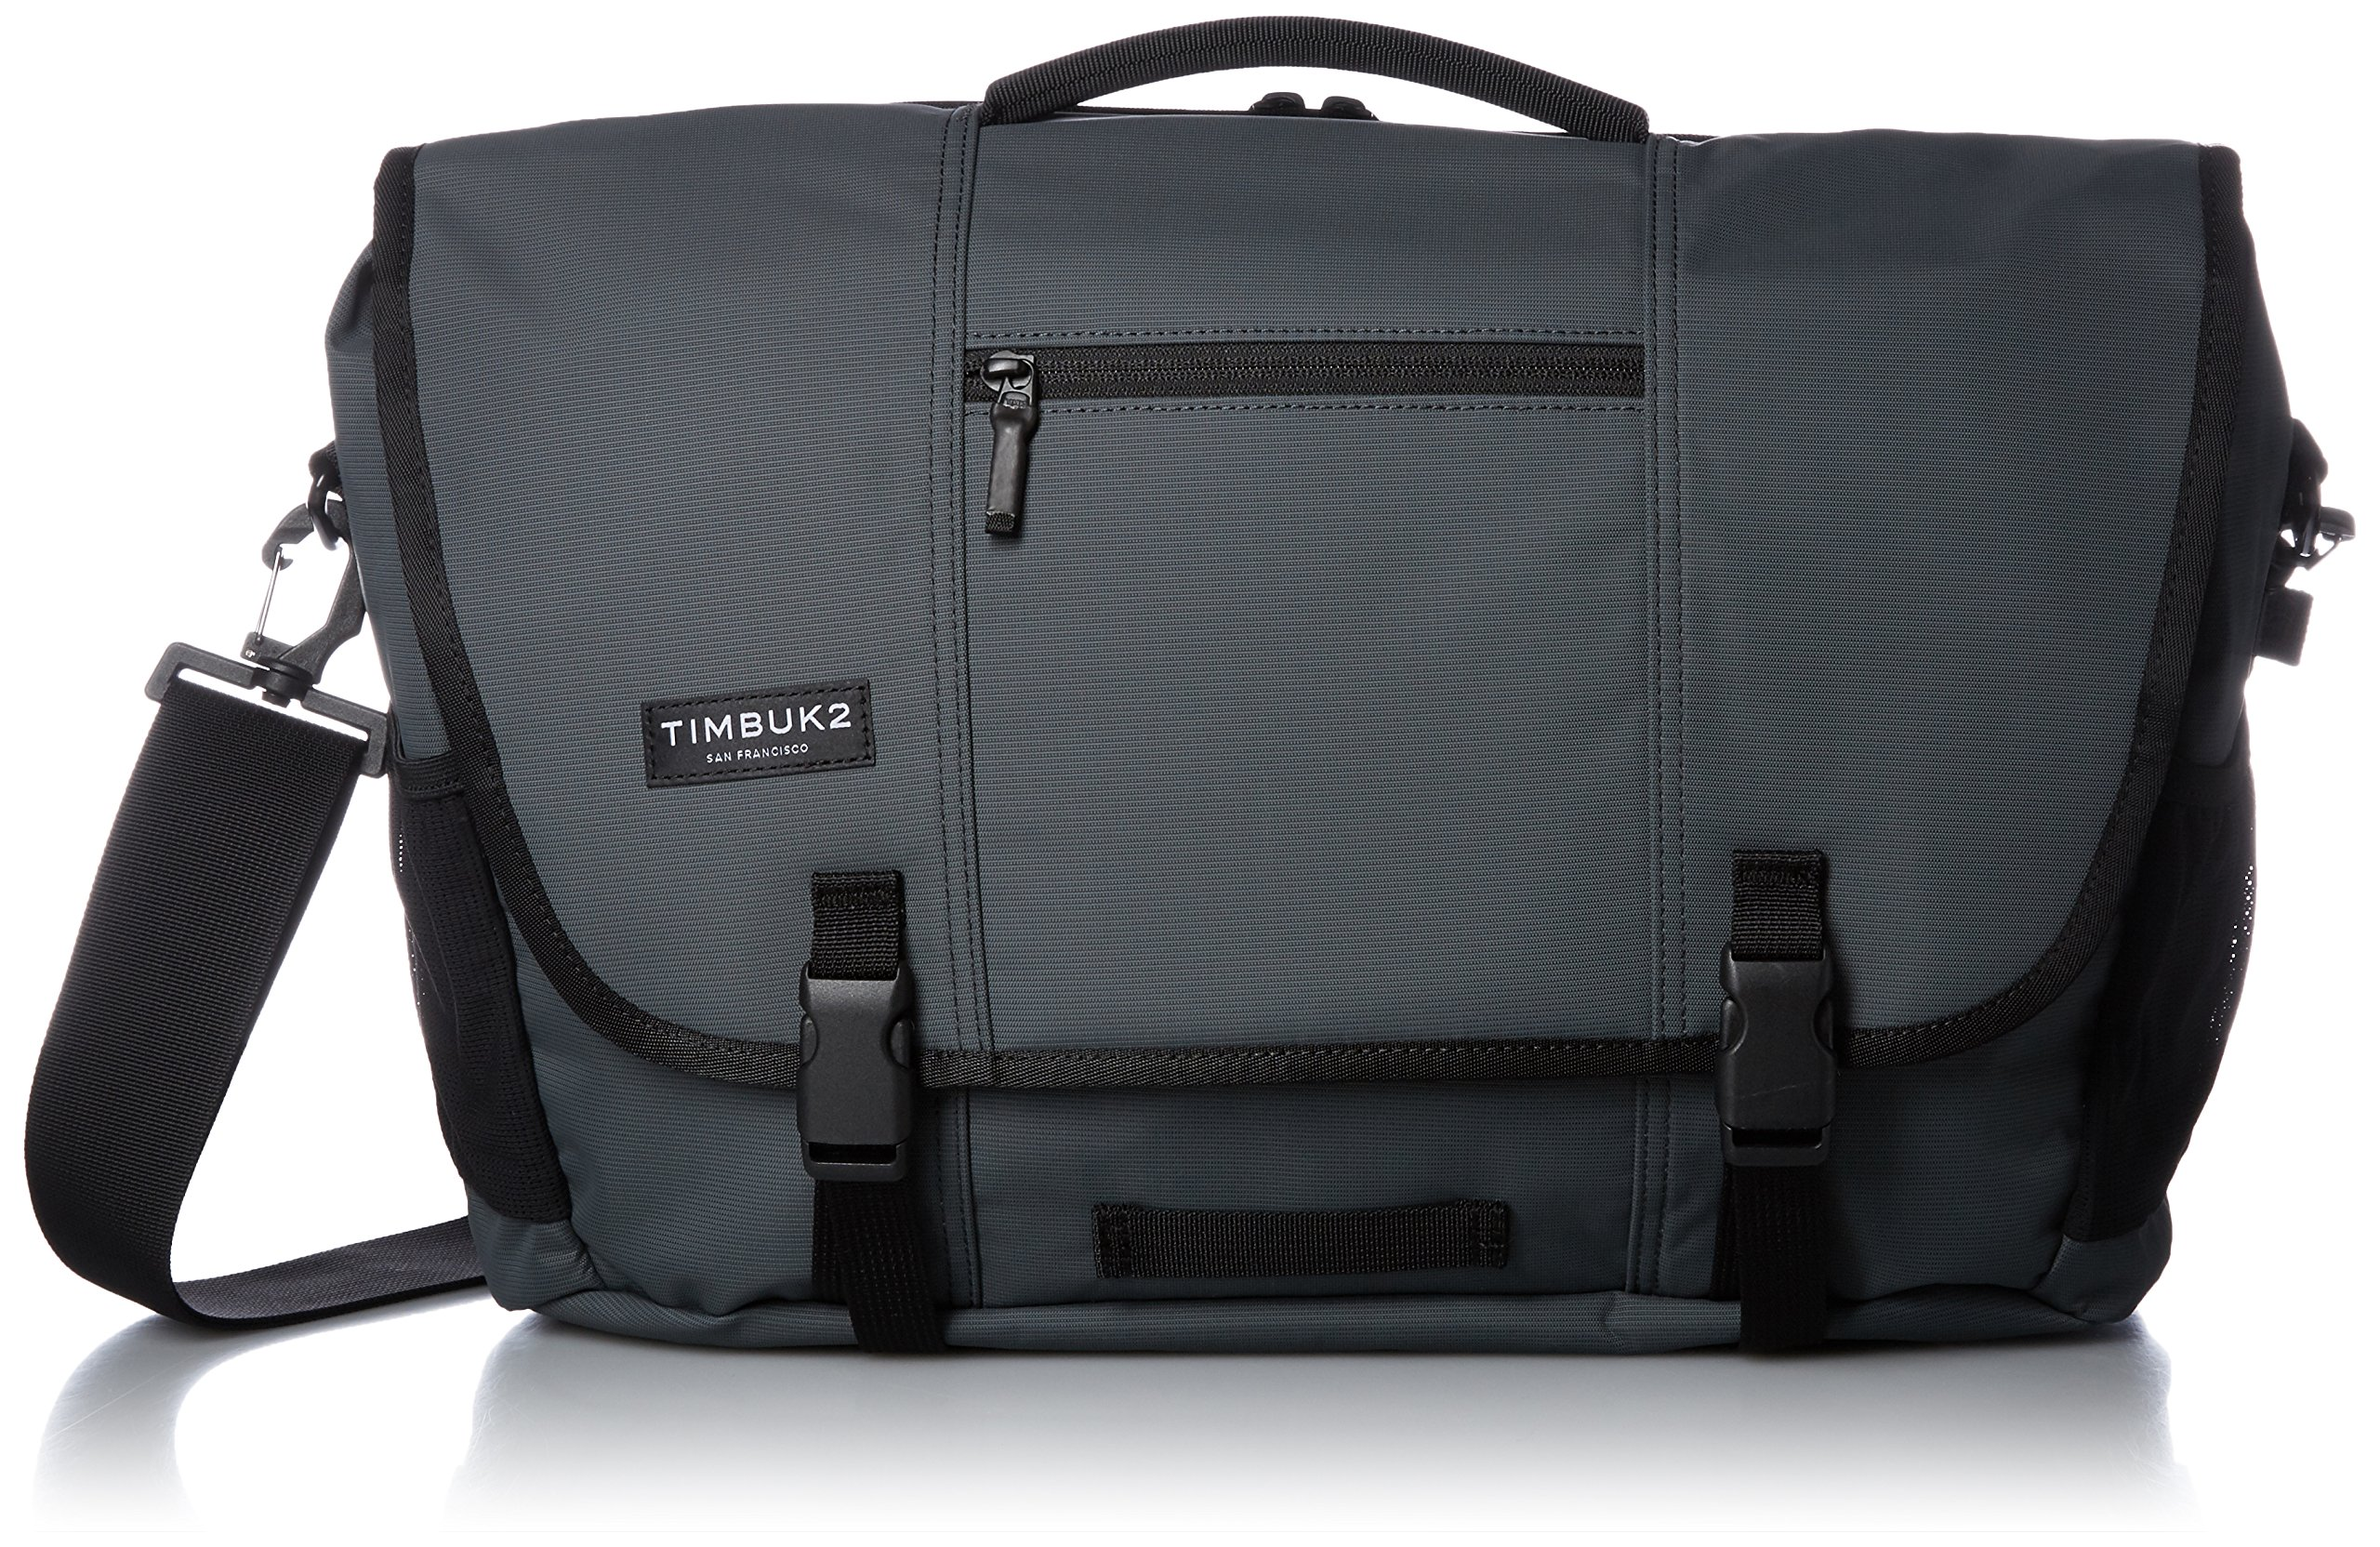 Timbuk2 Commute Messenger Bag, Surplus, M, Medium